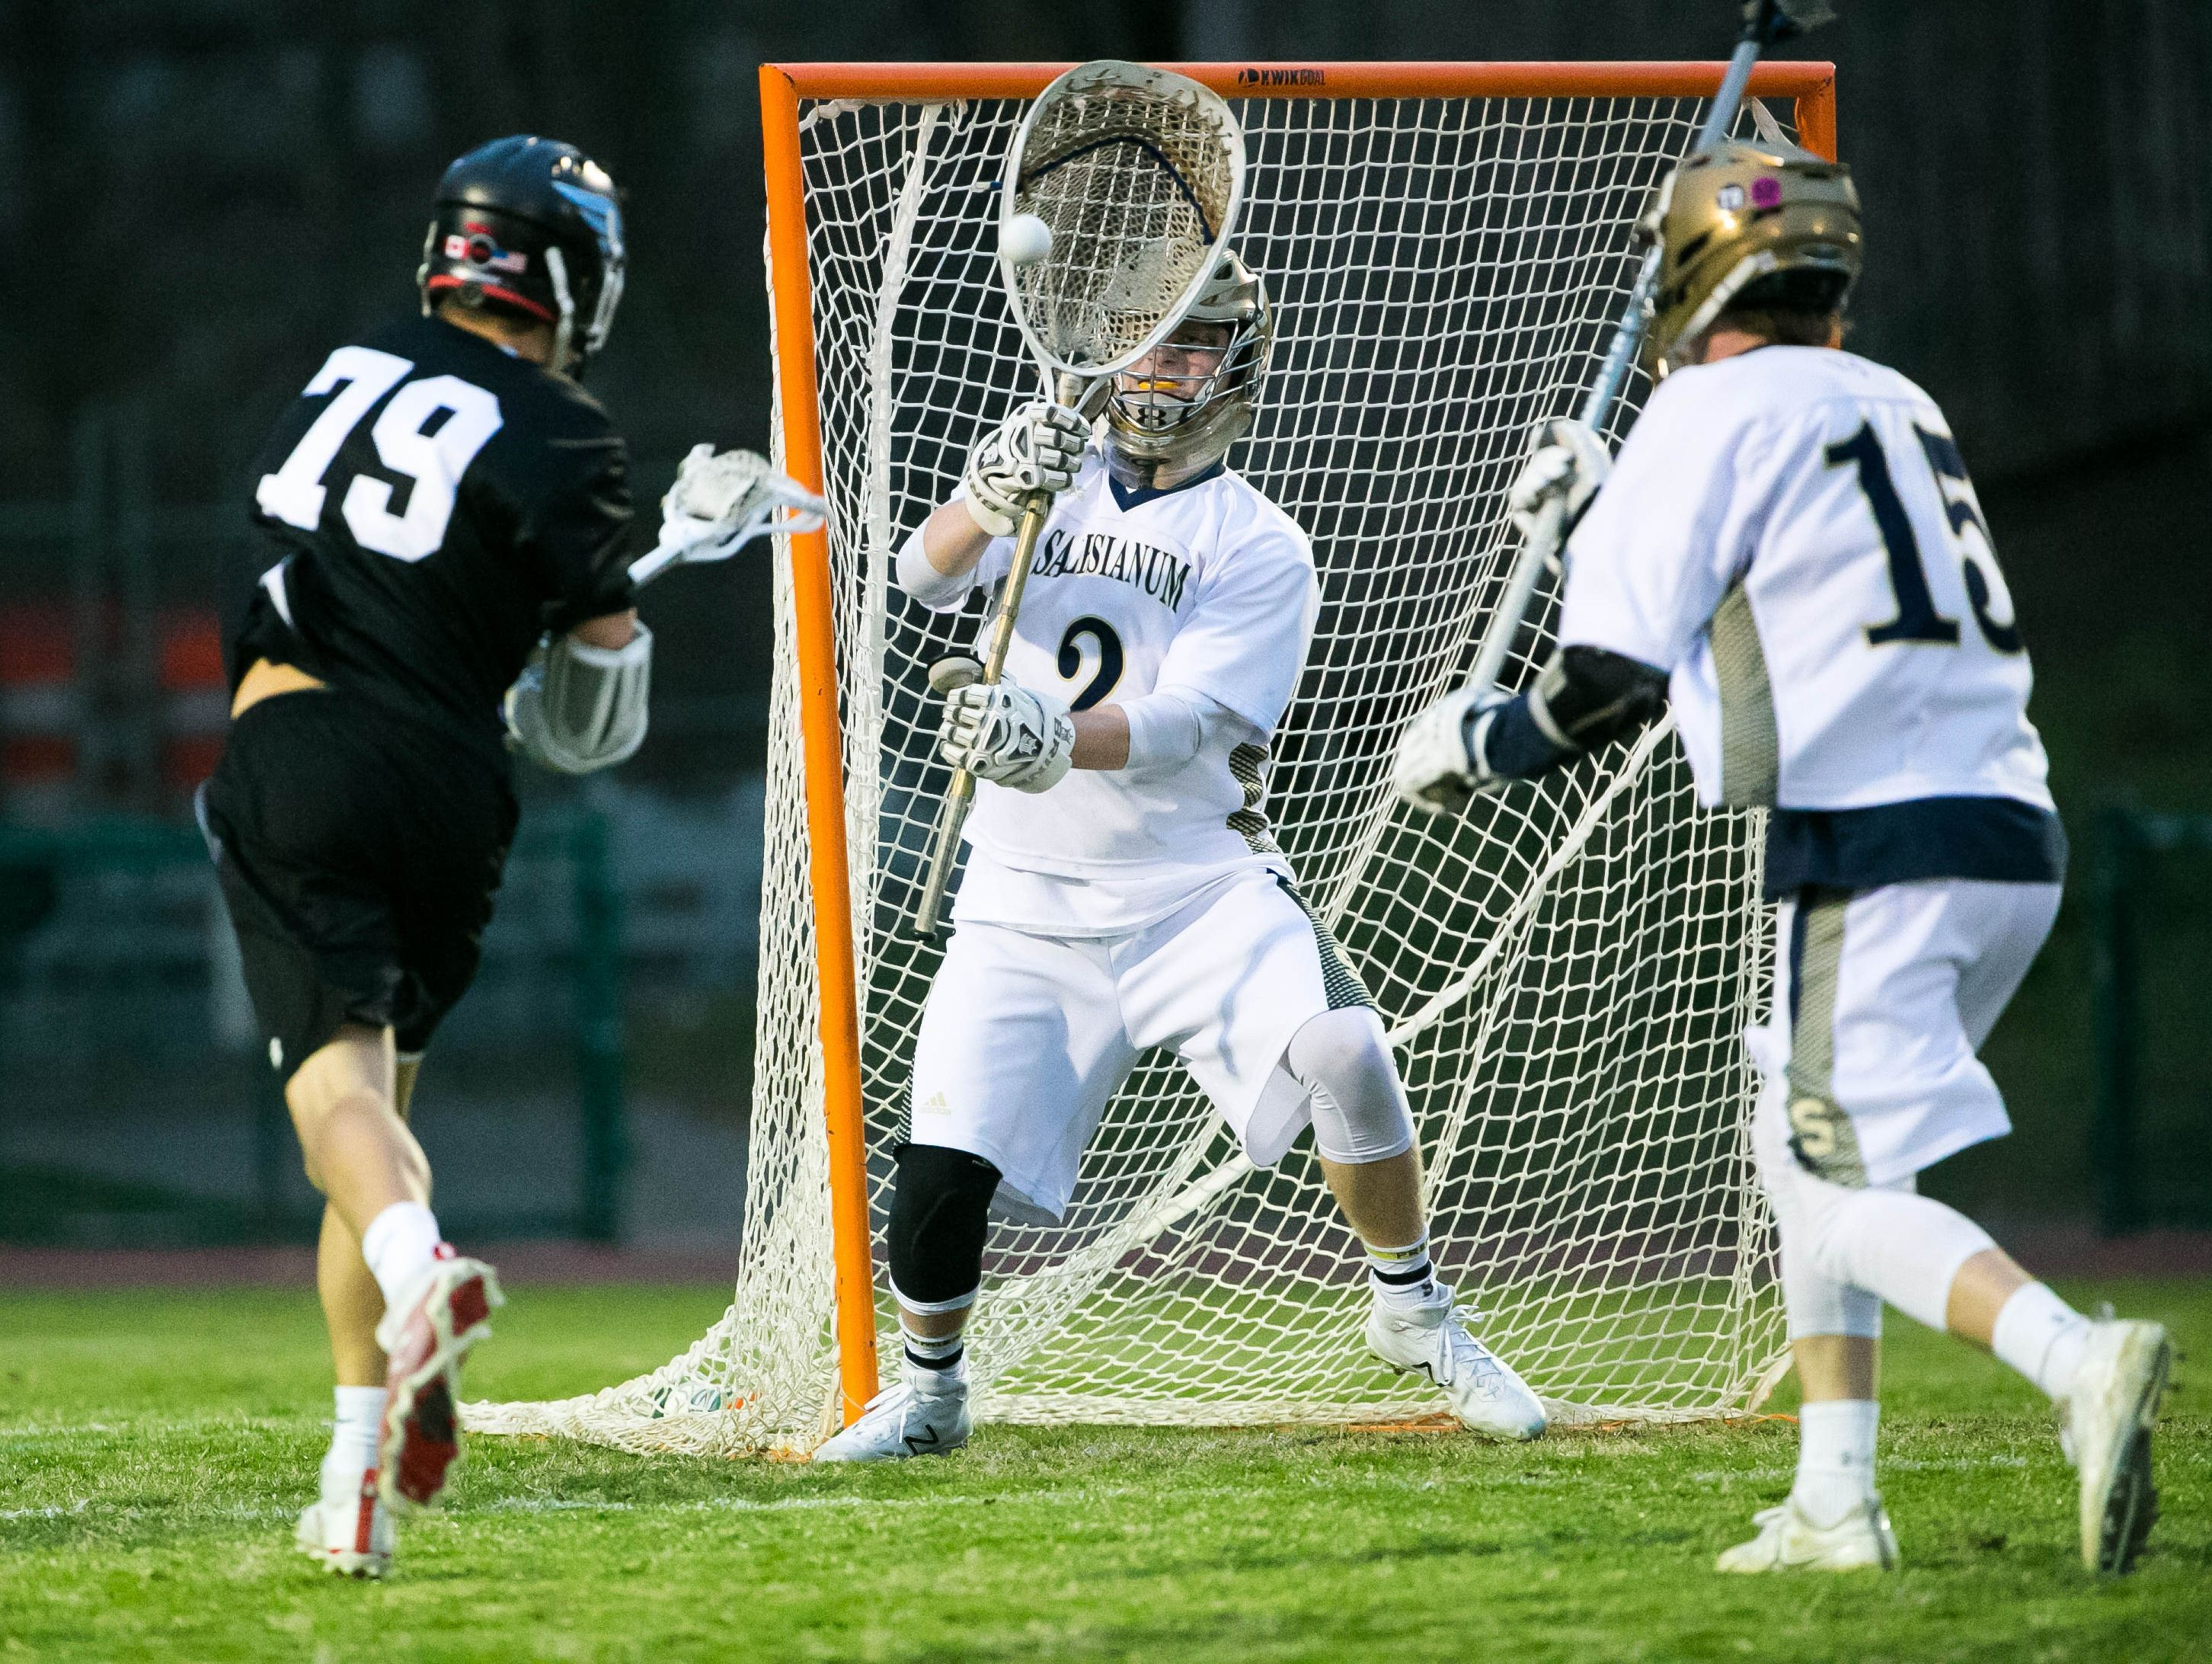 Josh Zawada of Hill Academy fires a shot at Salesianum goalie Brady Emmi for the first point of the game.